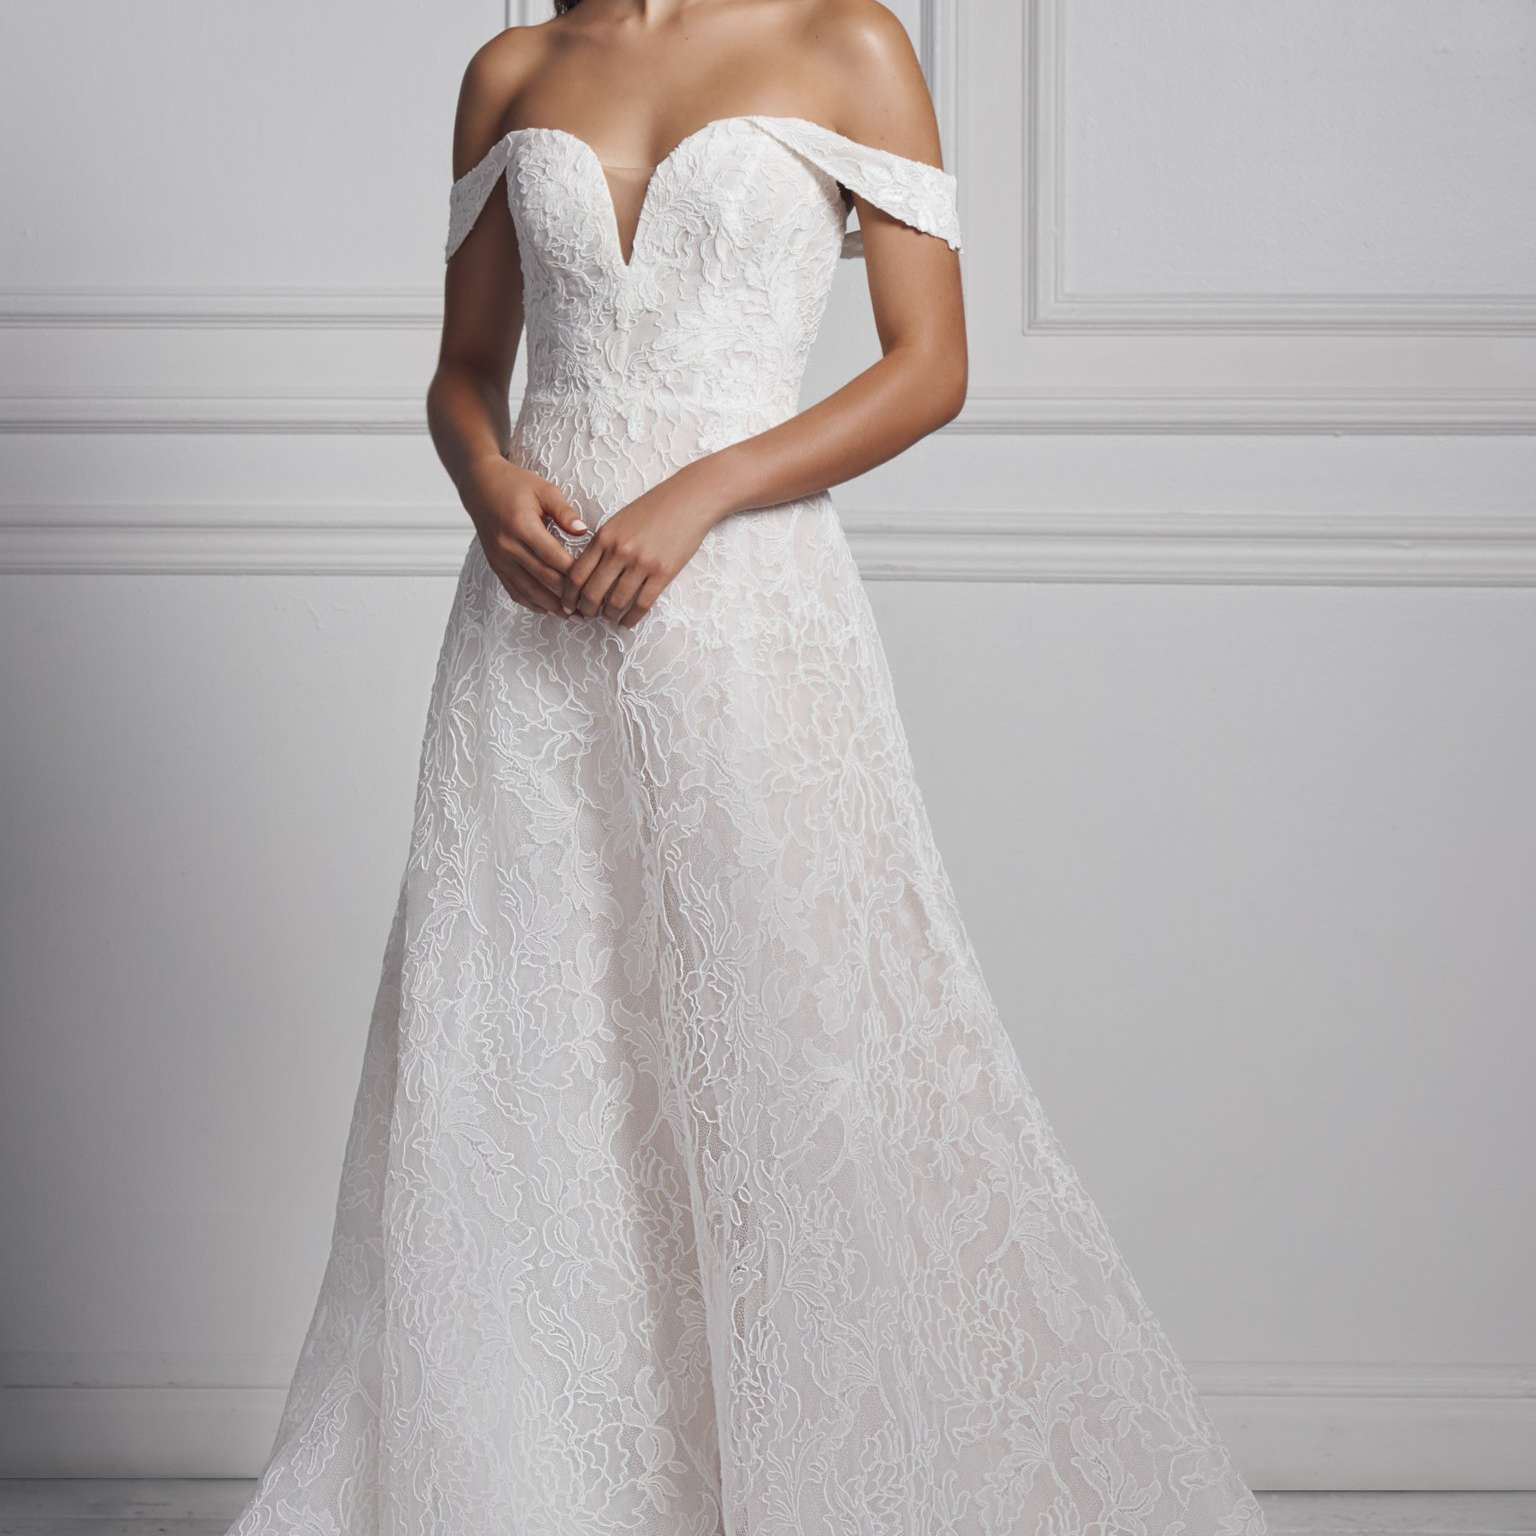 Model in off-the-shoulder lace ballgown with illusion neckline